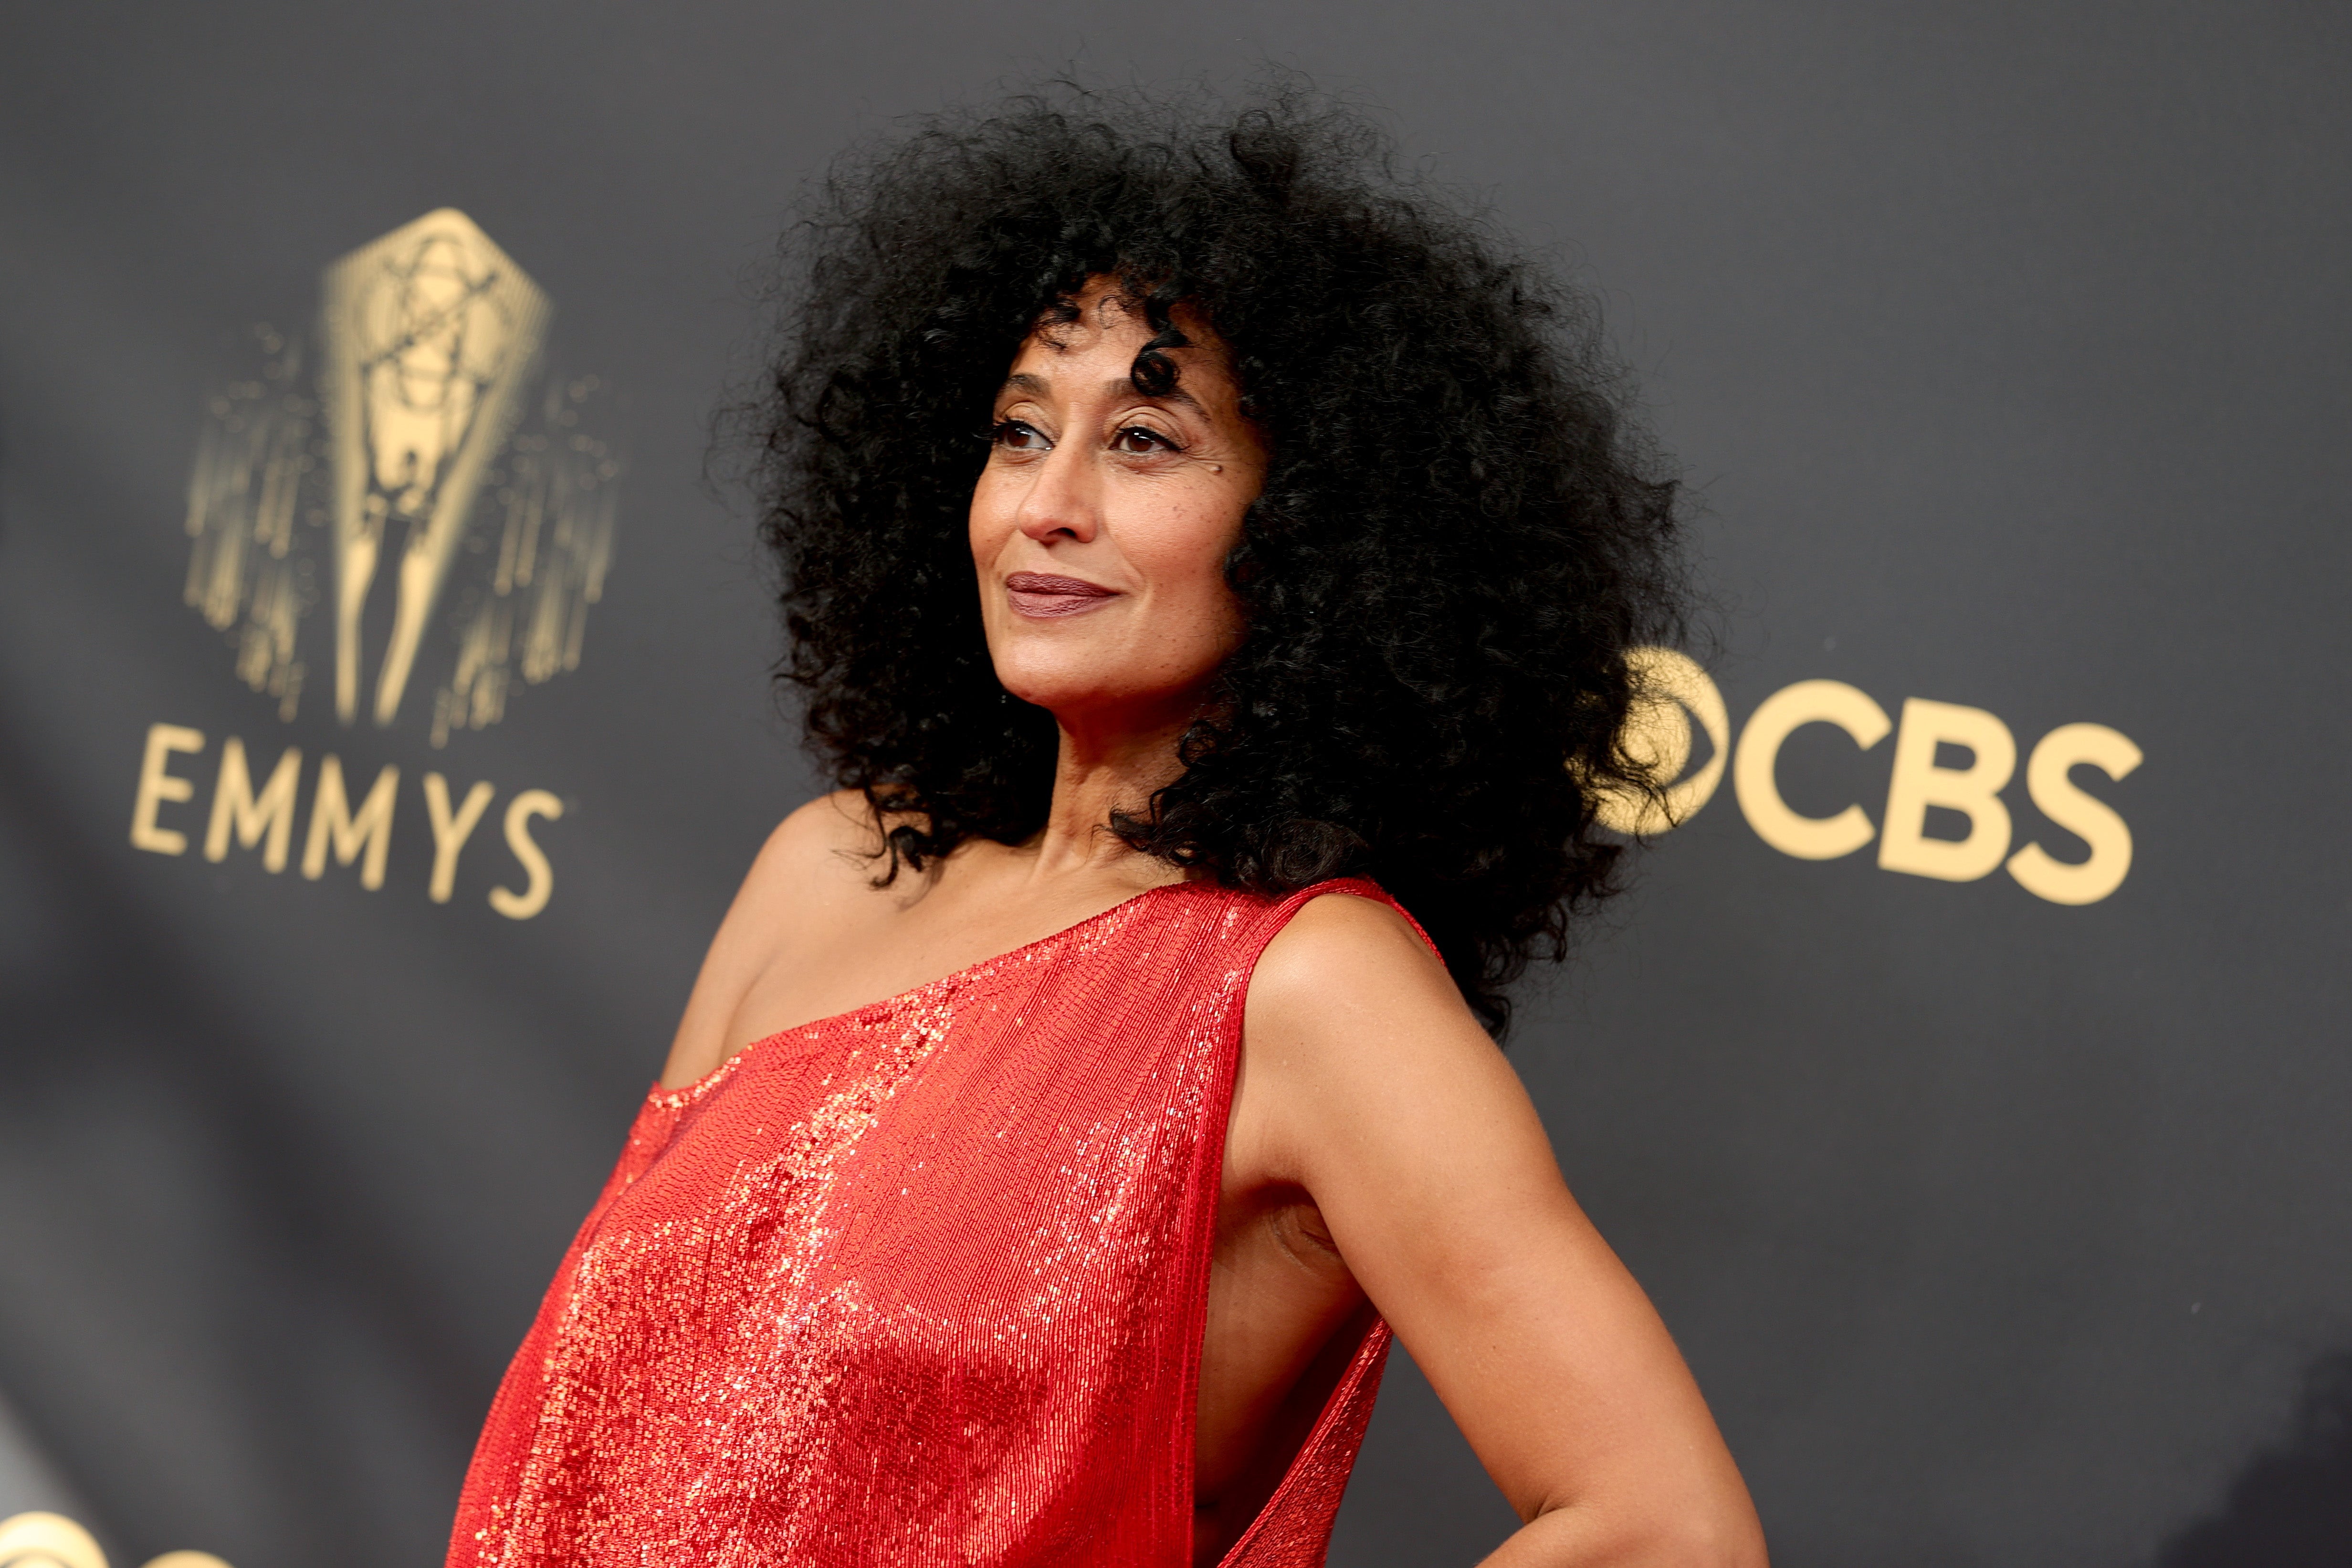 Tracee Ellis Ross attends the 73rd Primetime Emmy Awards at L.A. LIVE on September 19, 2021 in Los Angeles, California.